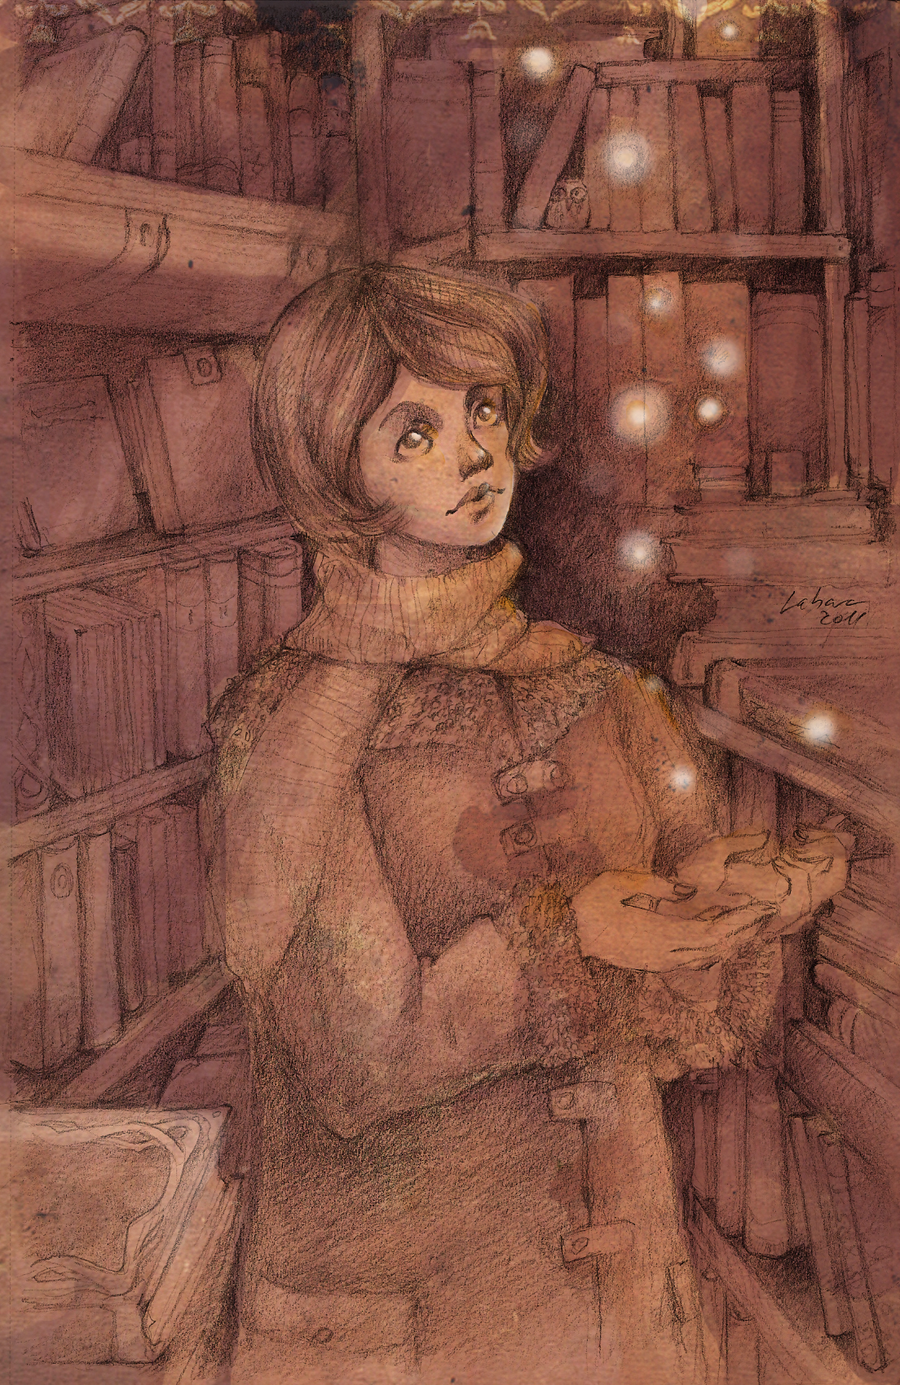 Bookshop Magic by Lahara